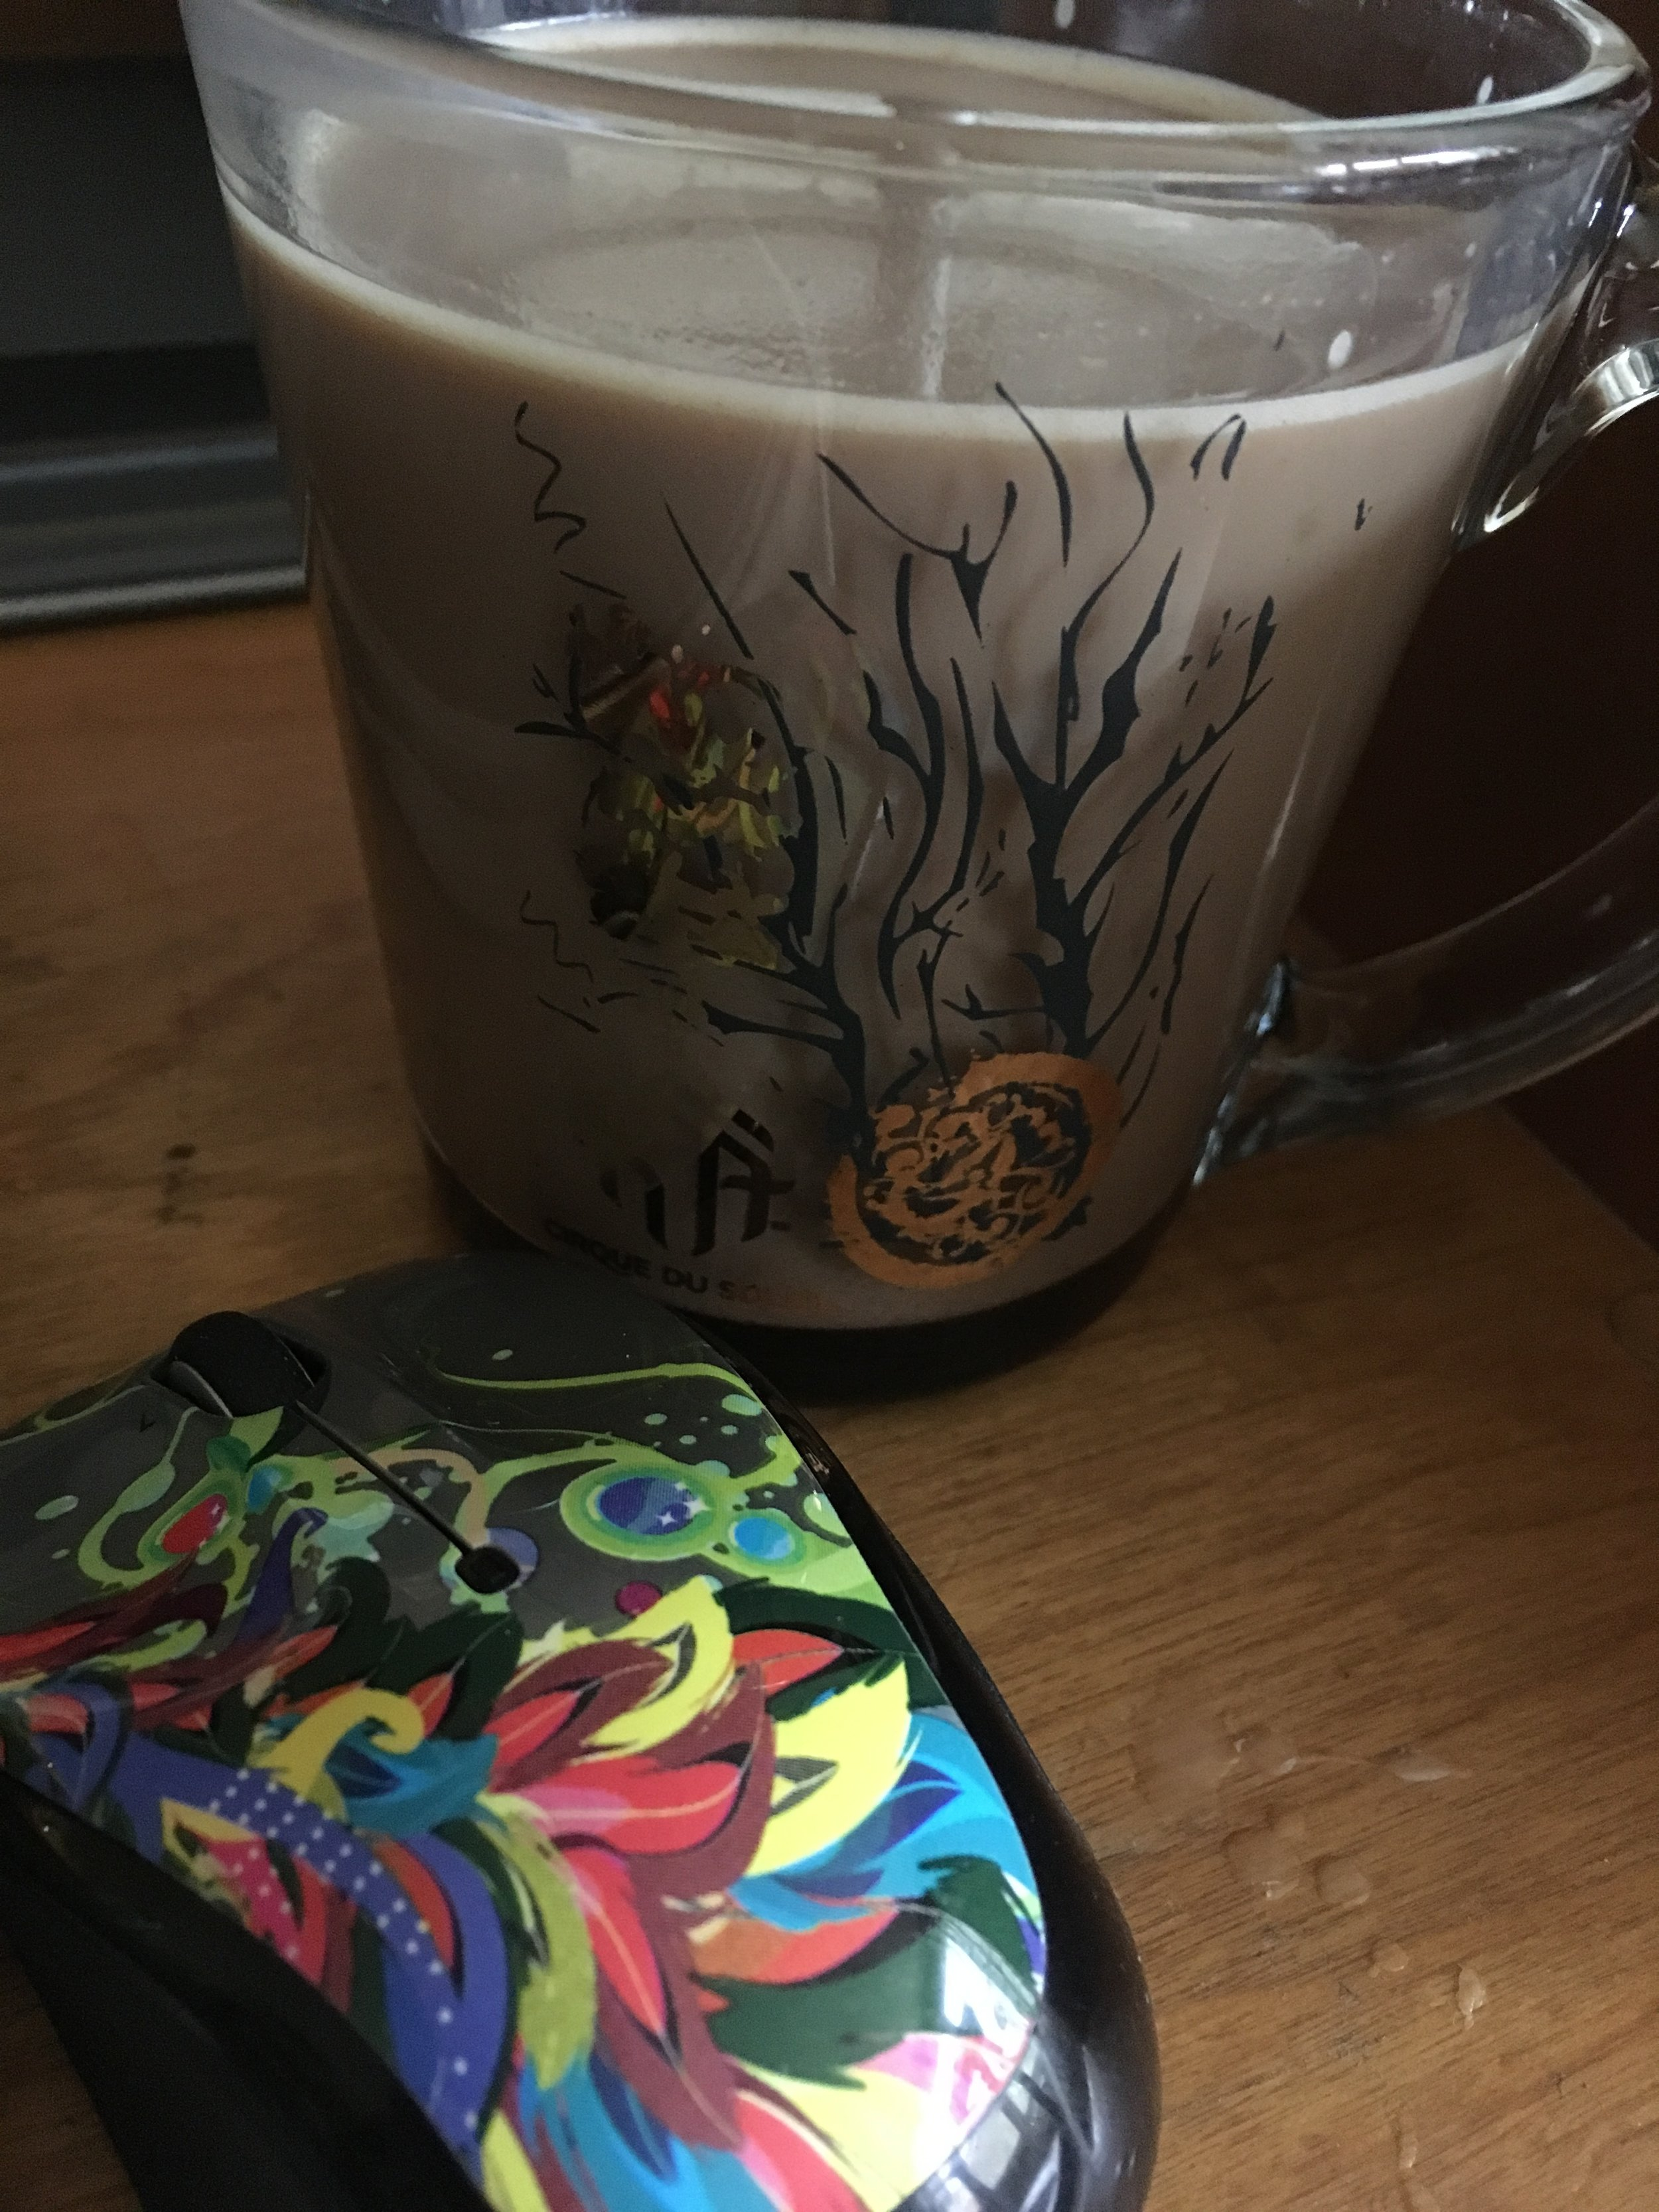 Currently drinking: a gingered dark chocolate mocha because something dark and complicated and spicy really goes well with this book. You can find my recipe for gingered dark chocolate syrup in a recent post  here .